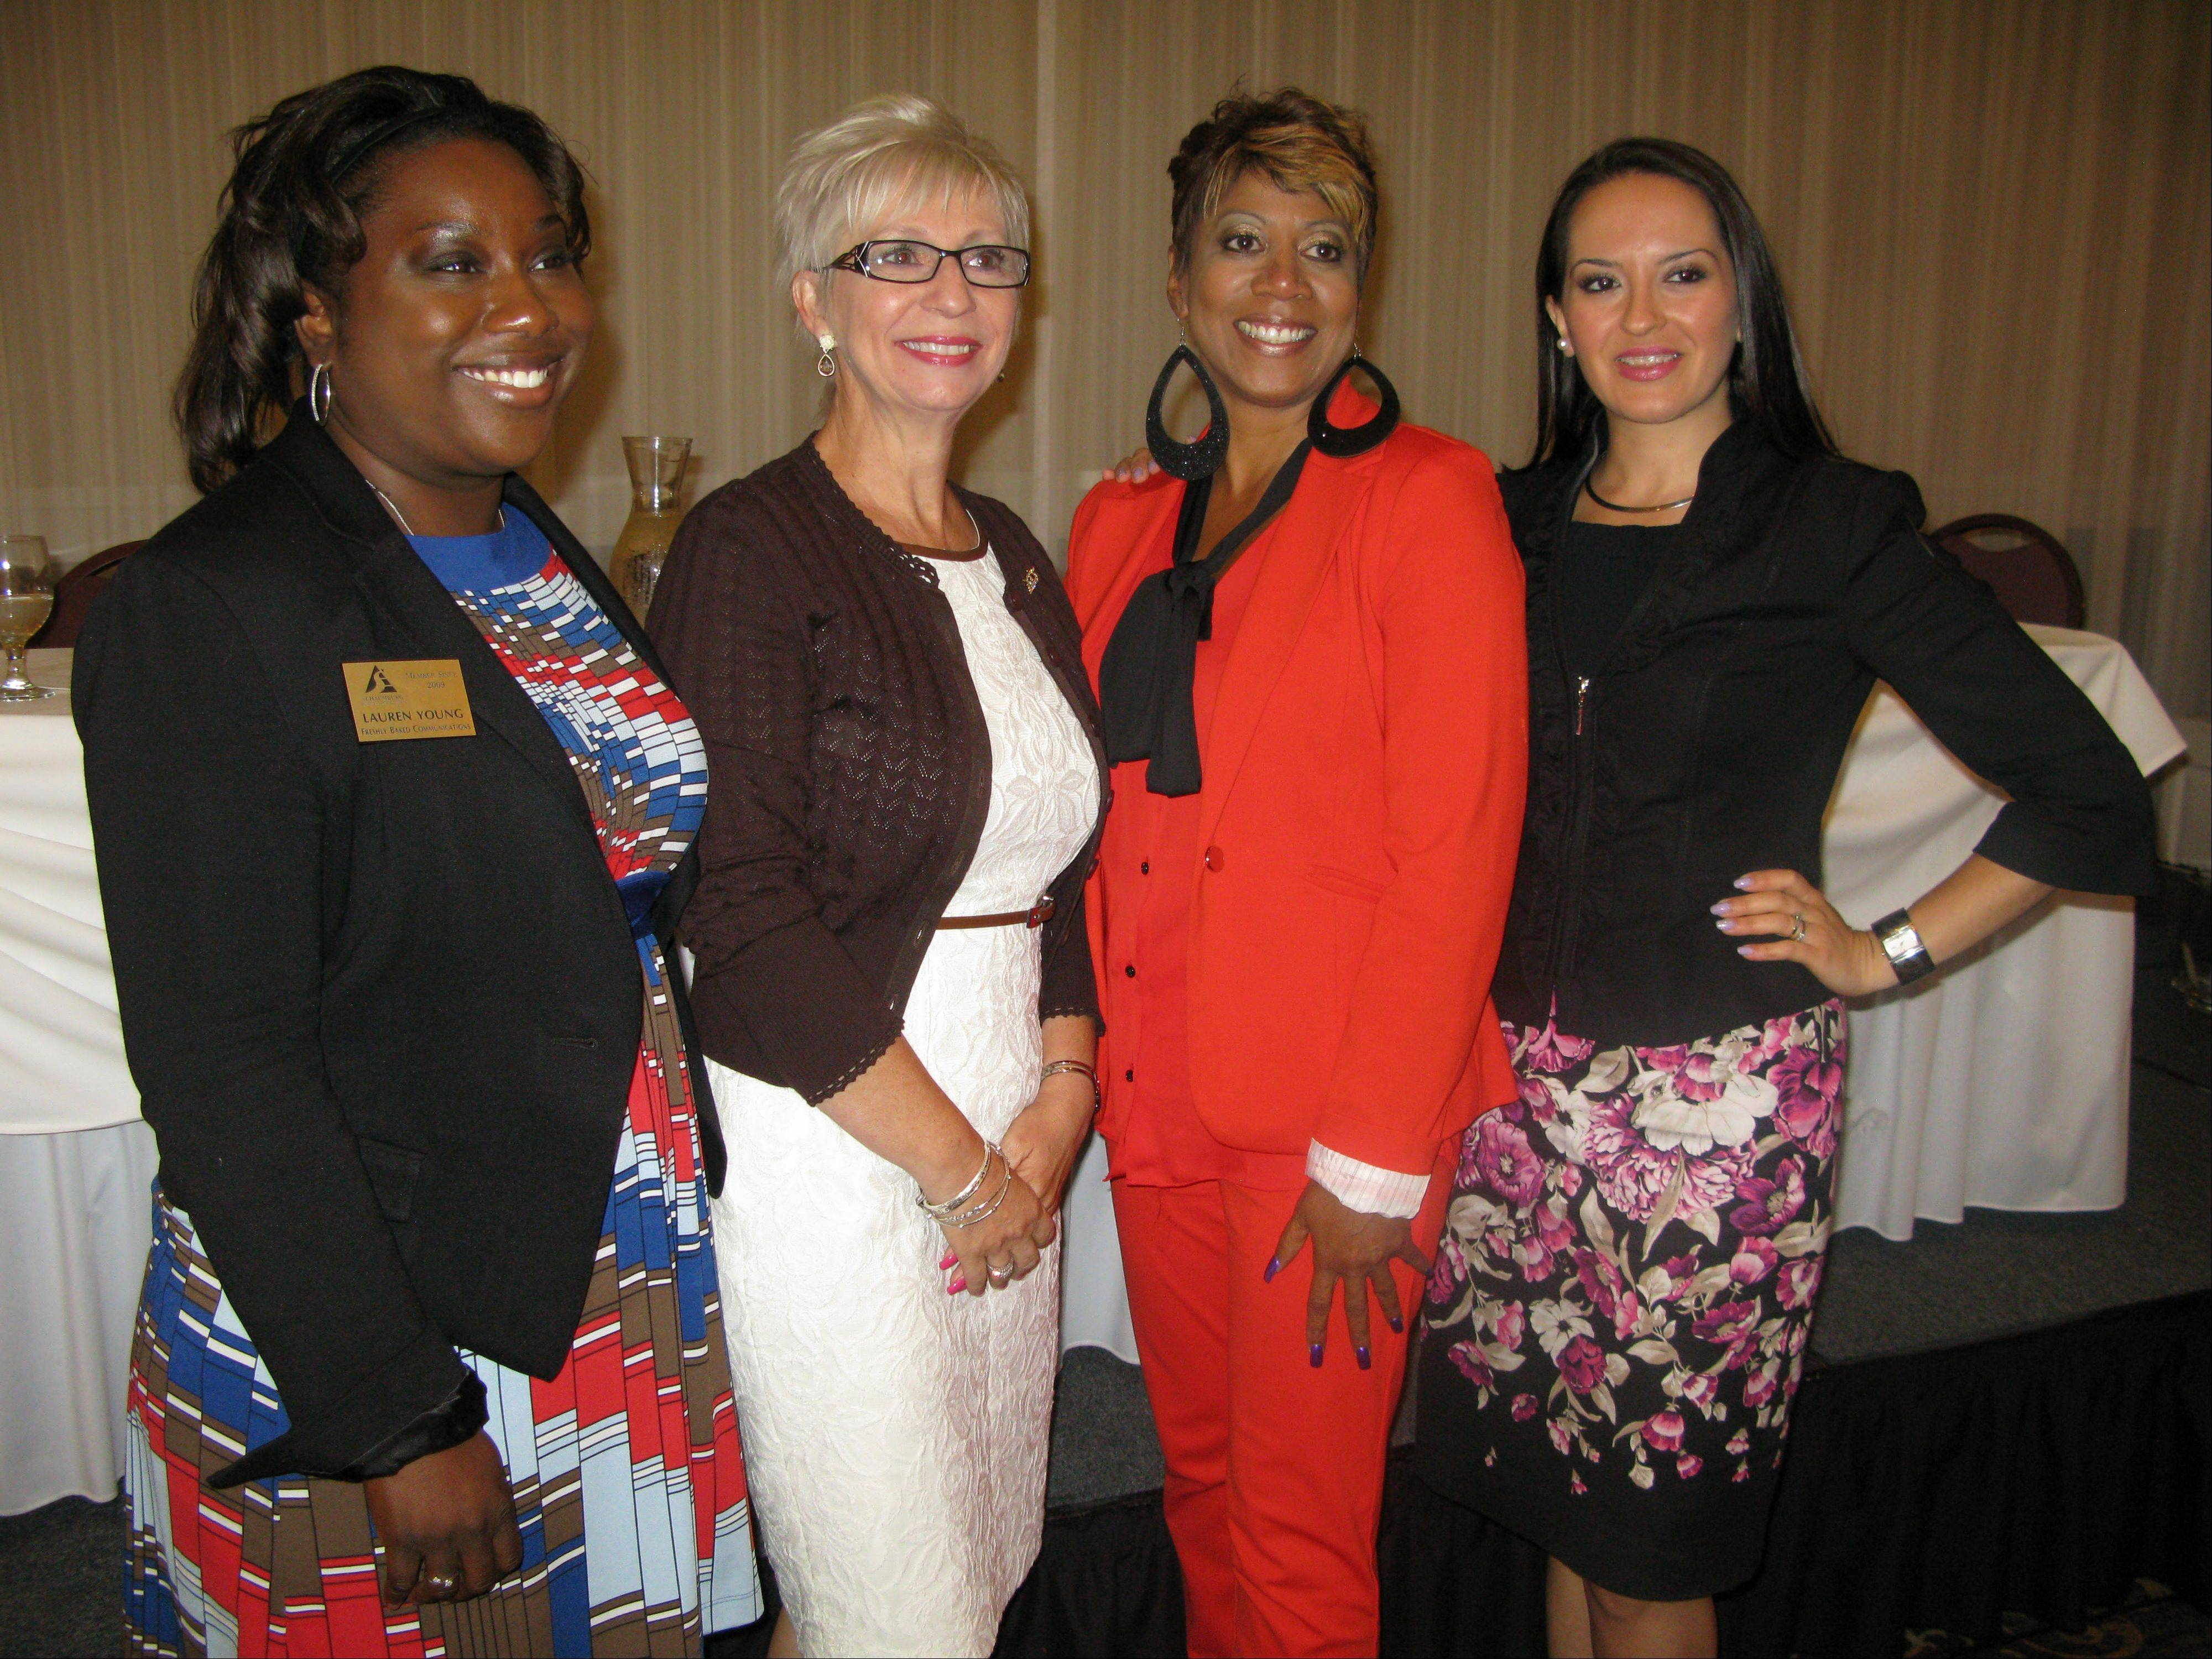 From left, women CEOs Lauren Young, Kathy Miller, DaVetta Collins, and Jacqueline Camacho-Ruiz shared tips Tuesday on how to become successful entrepreneurs at the Schaumburg Business Association�s Good Morning Schaumburg breakfast.